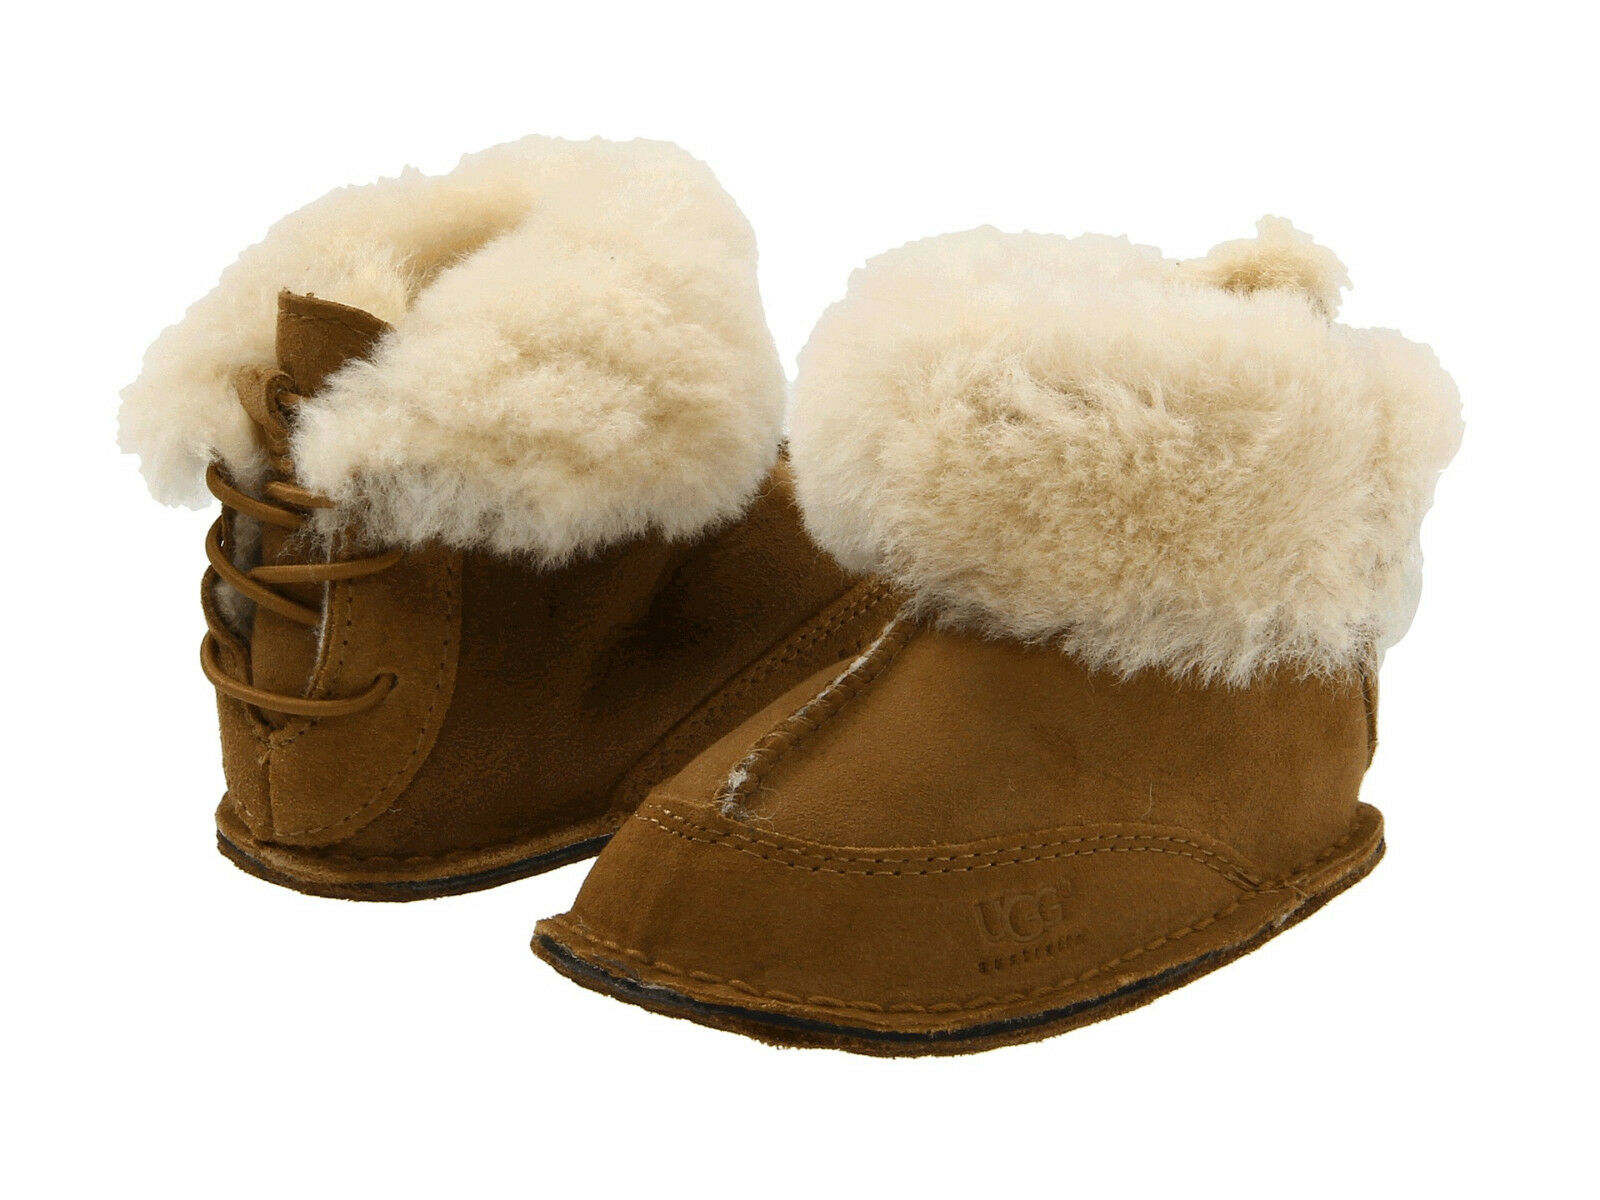 199d6625185 UGG Australia I Boo Infant Tan / Chestnut Small 6-12 Months BOOTS 5206